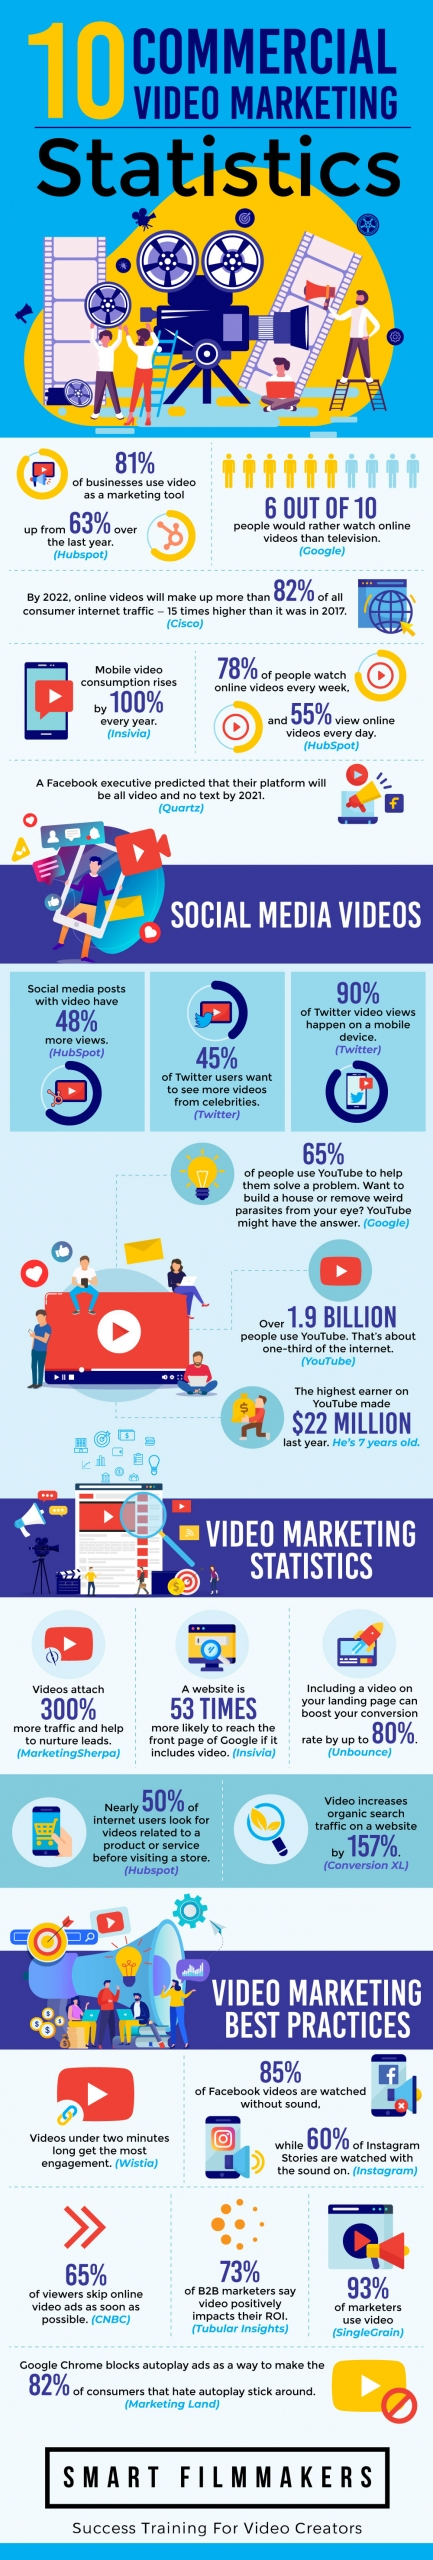 10 Commercial Video Marketing Statistics